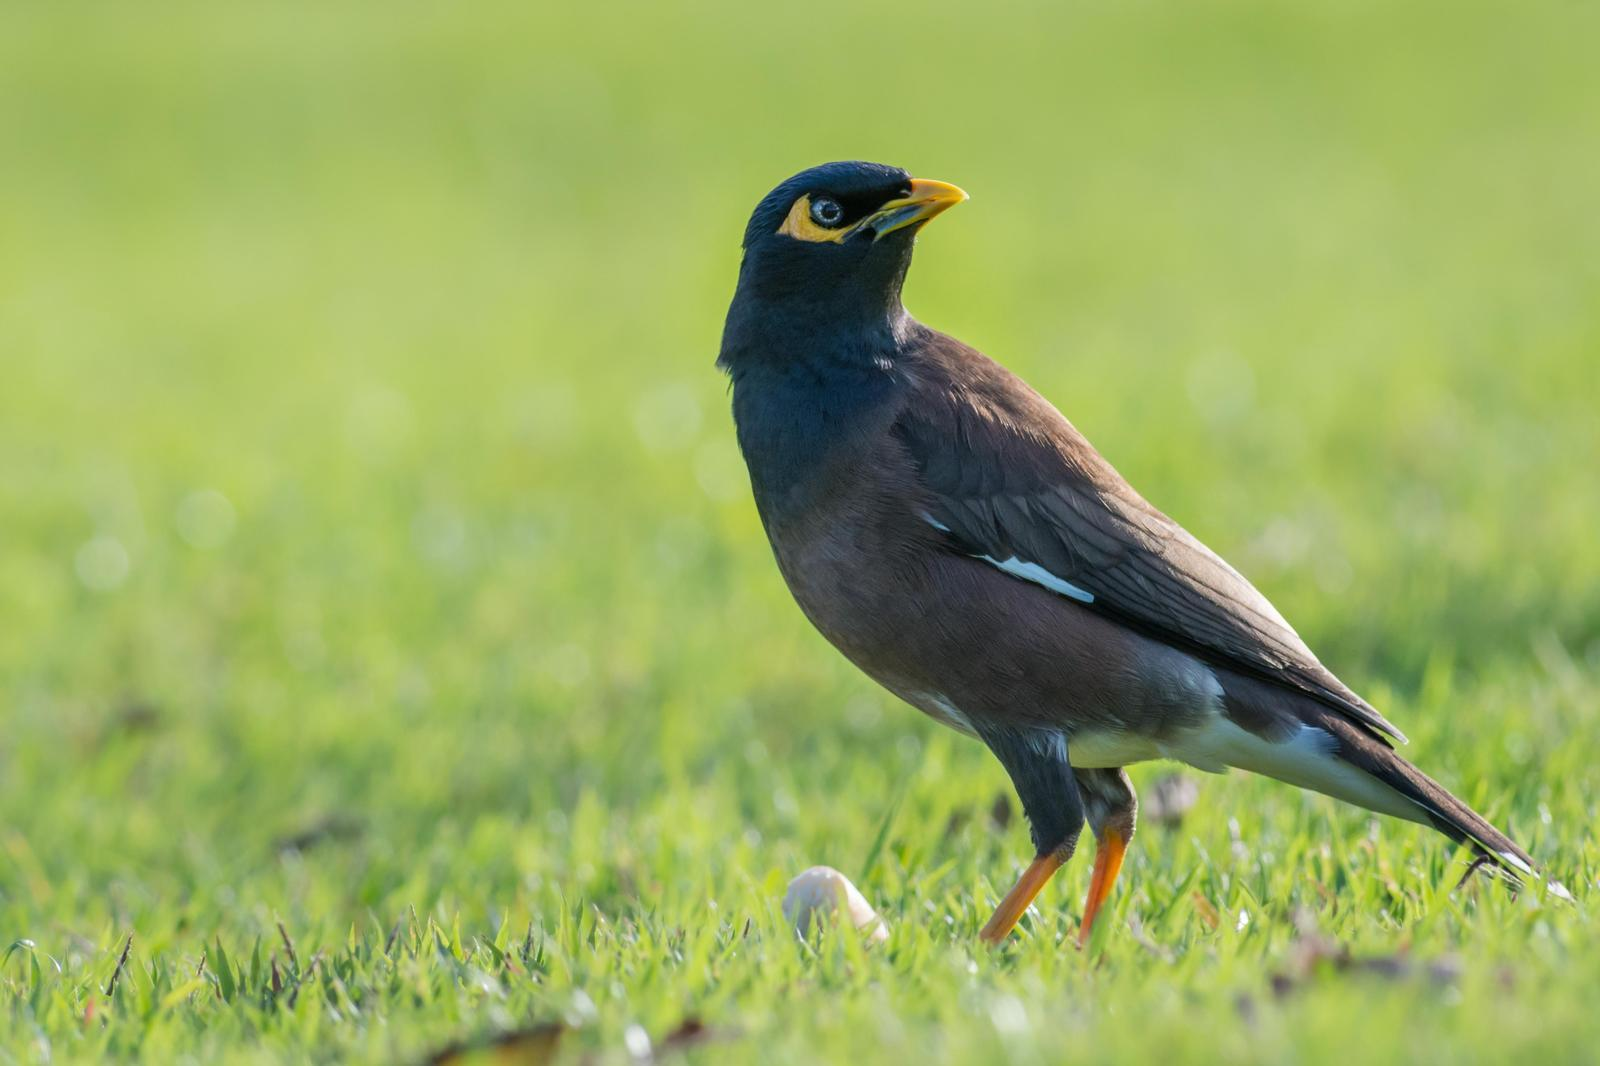 Common Myna Photo by Jesse Hodges